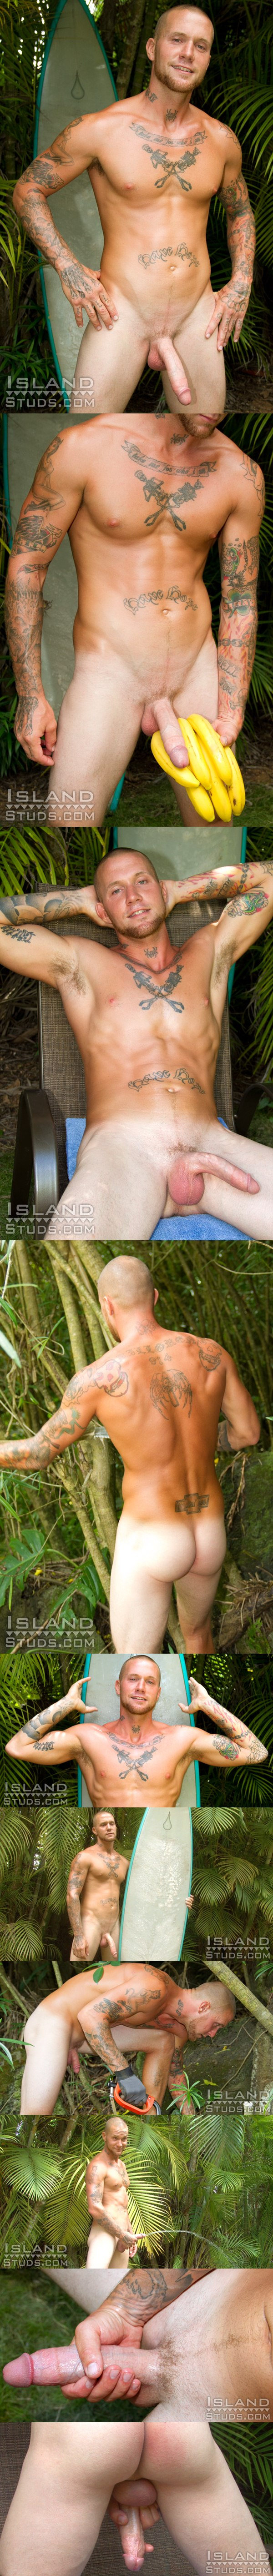 rough looking 9 inch monster dick Dino shoots a thick heavy load at Islandstuds 01